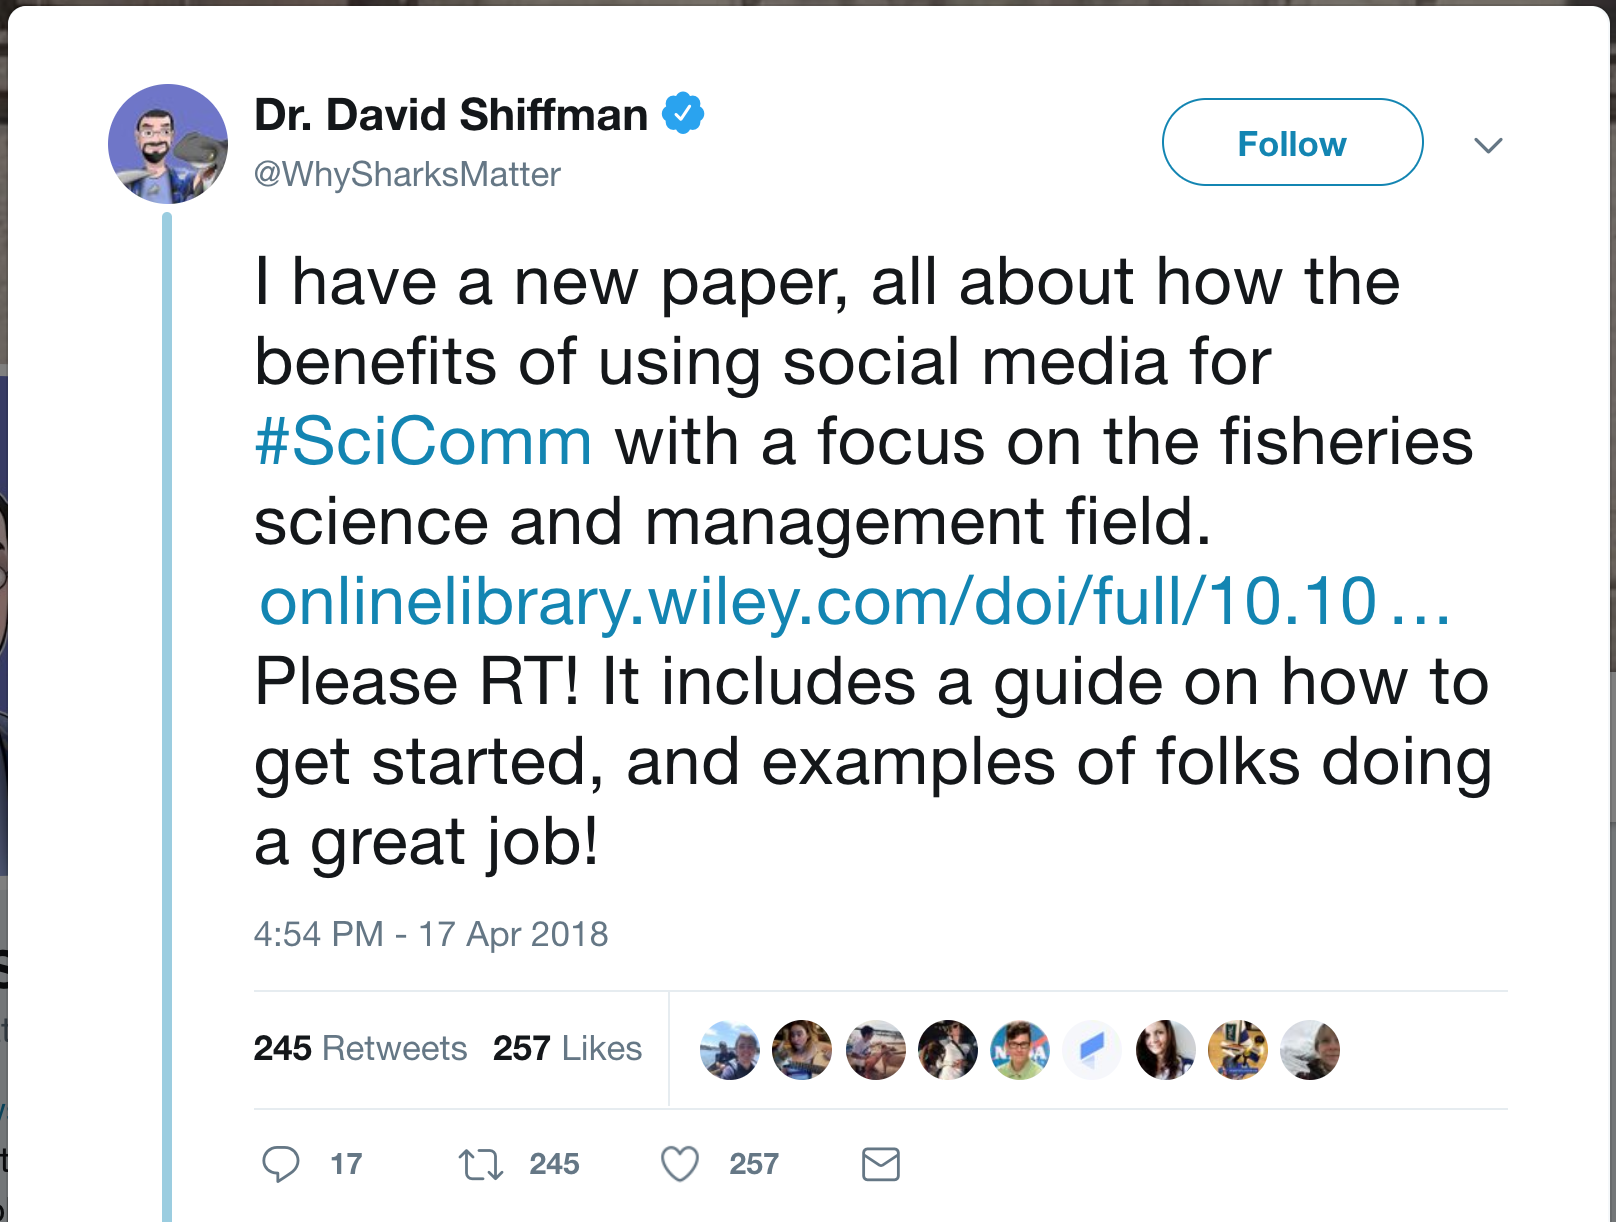 Tweet by David Shiffman